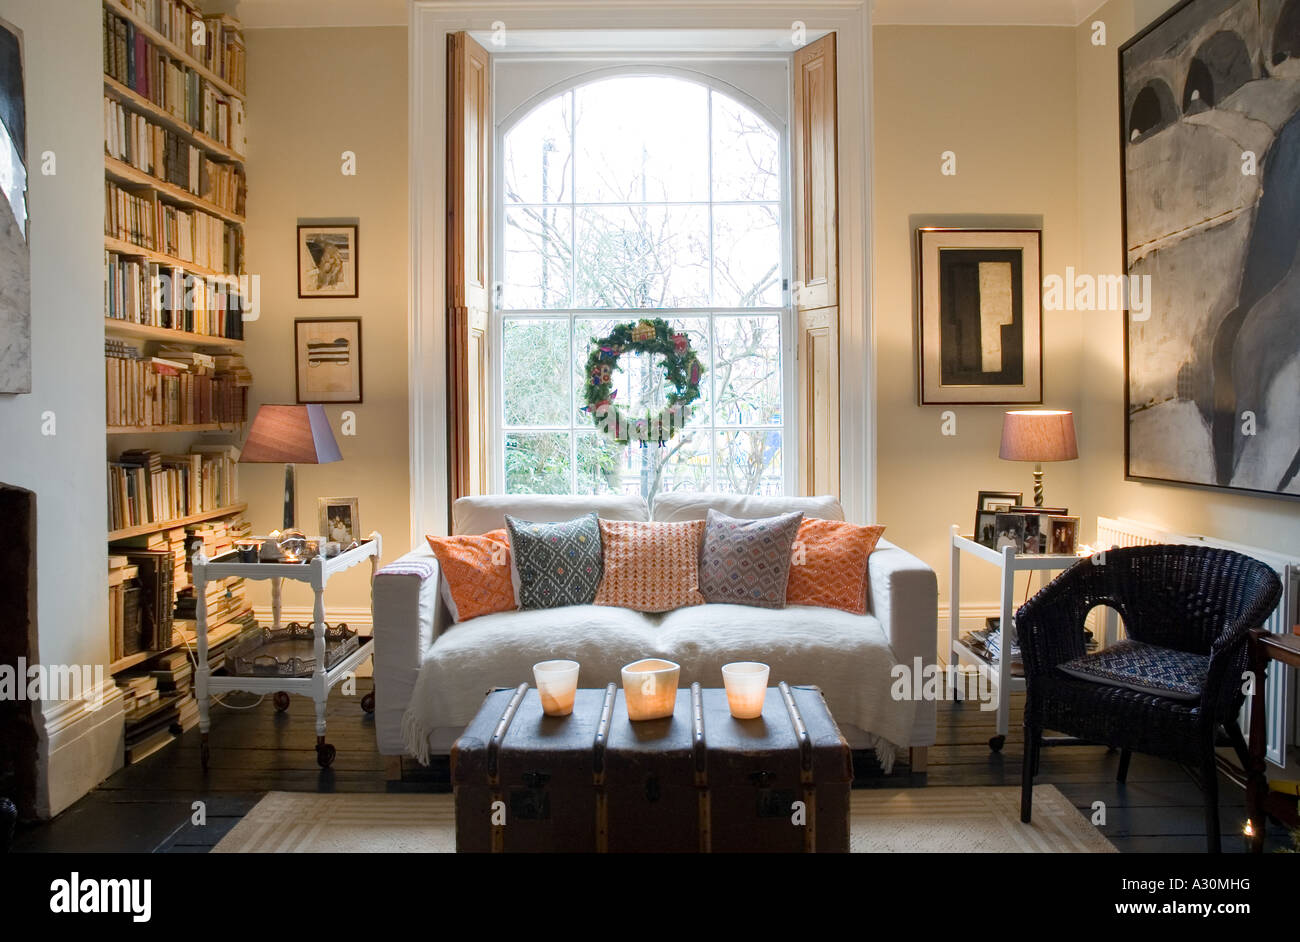 sofa underneath window with christmas wreath in the sitting room of a Georgian townhouse - Stock Image